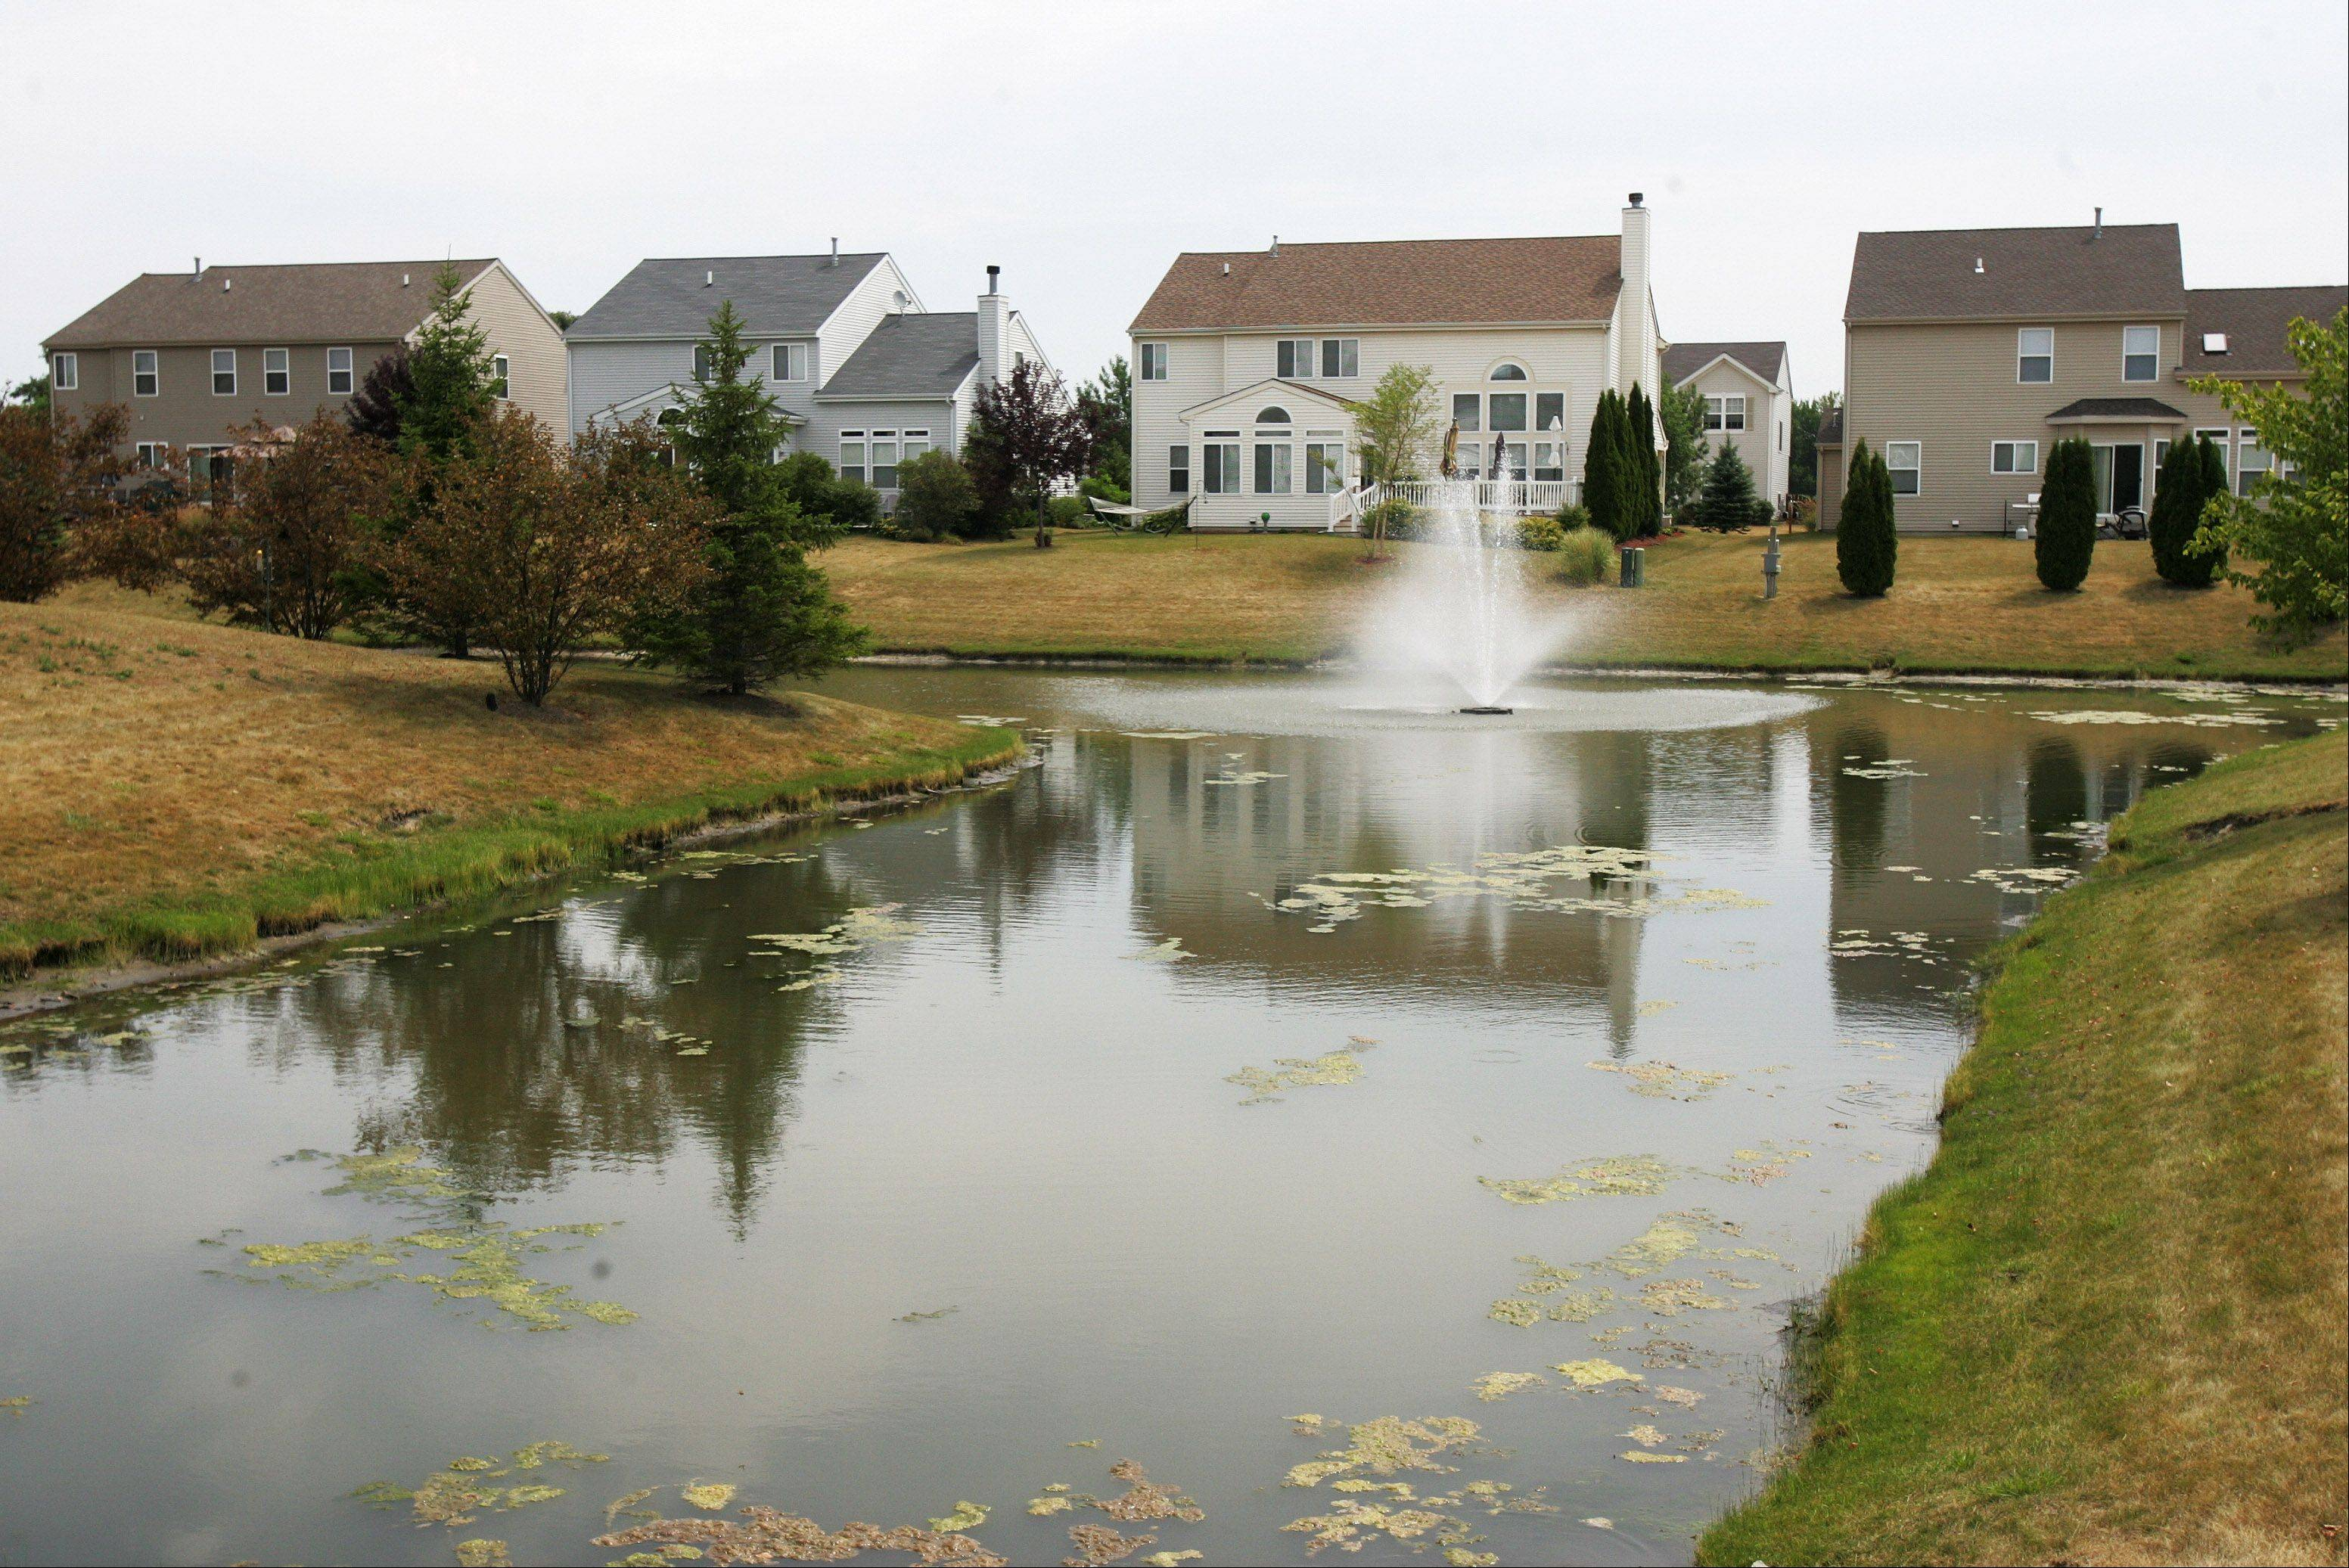 Many homes in the neighborhood overlook several ponds.